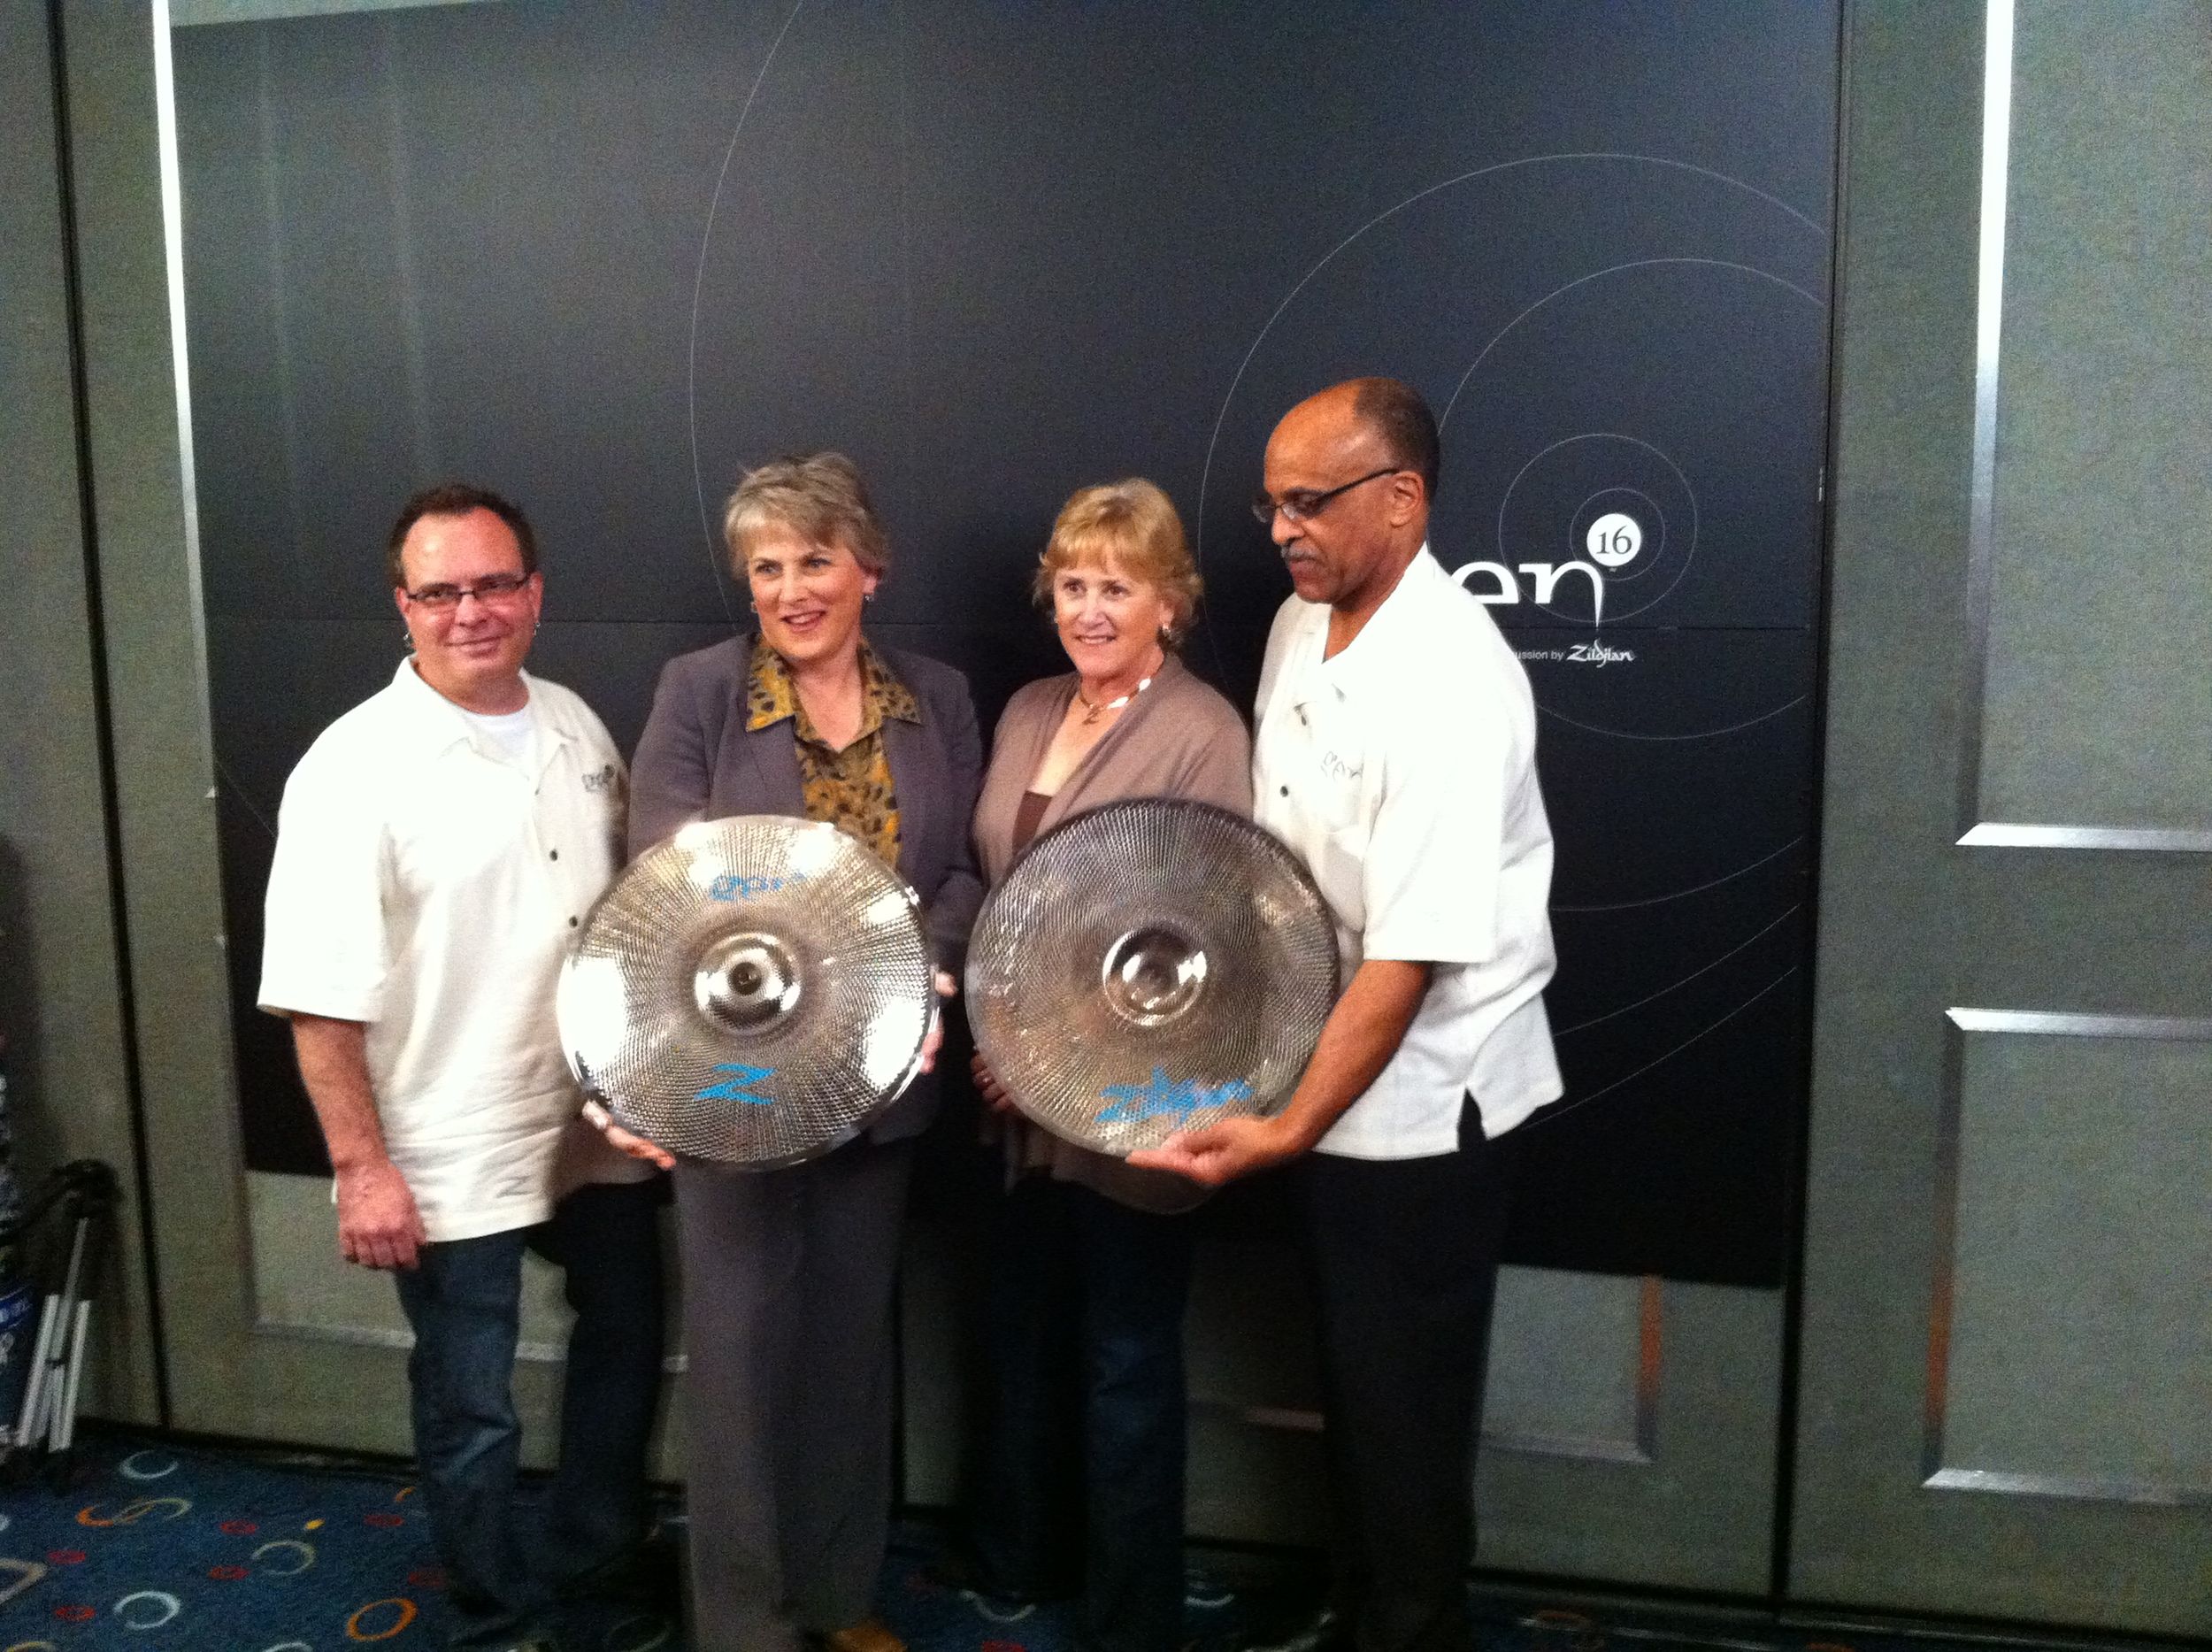 The launch of Zildjian's Gen-16 Acoustic Electric (AE) Cymbal System, with Craigie Zildjian, Debbie Zildjian, and John Roderick